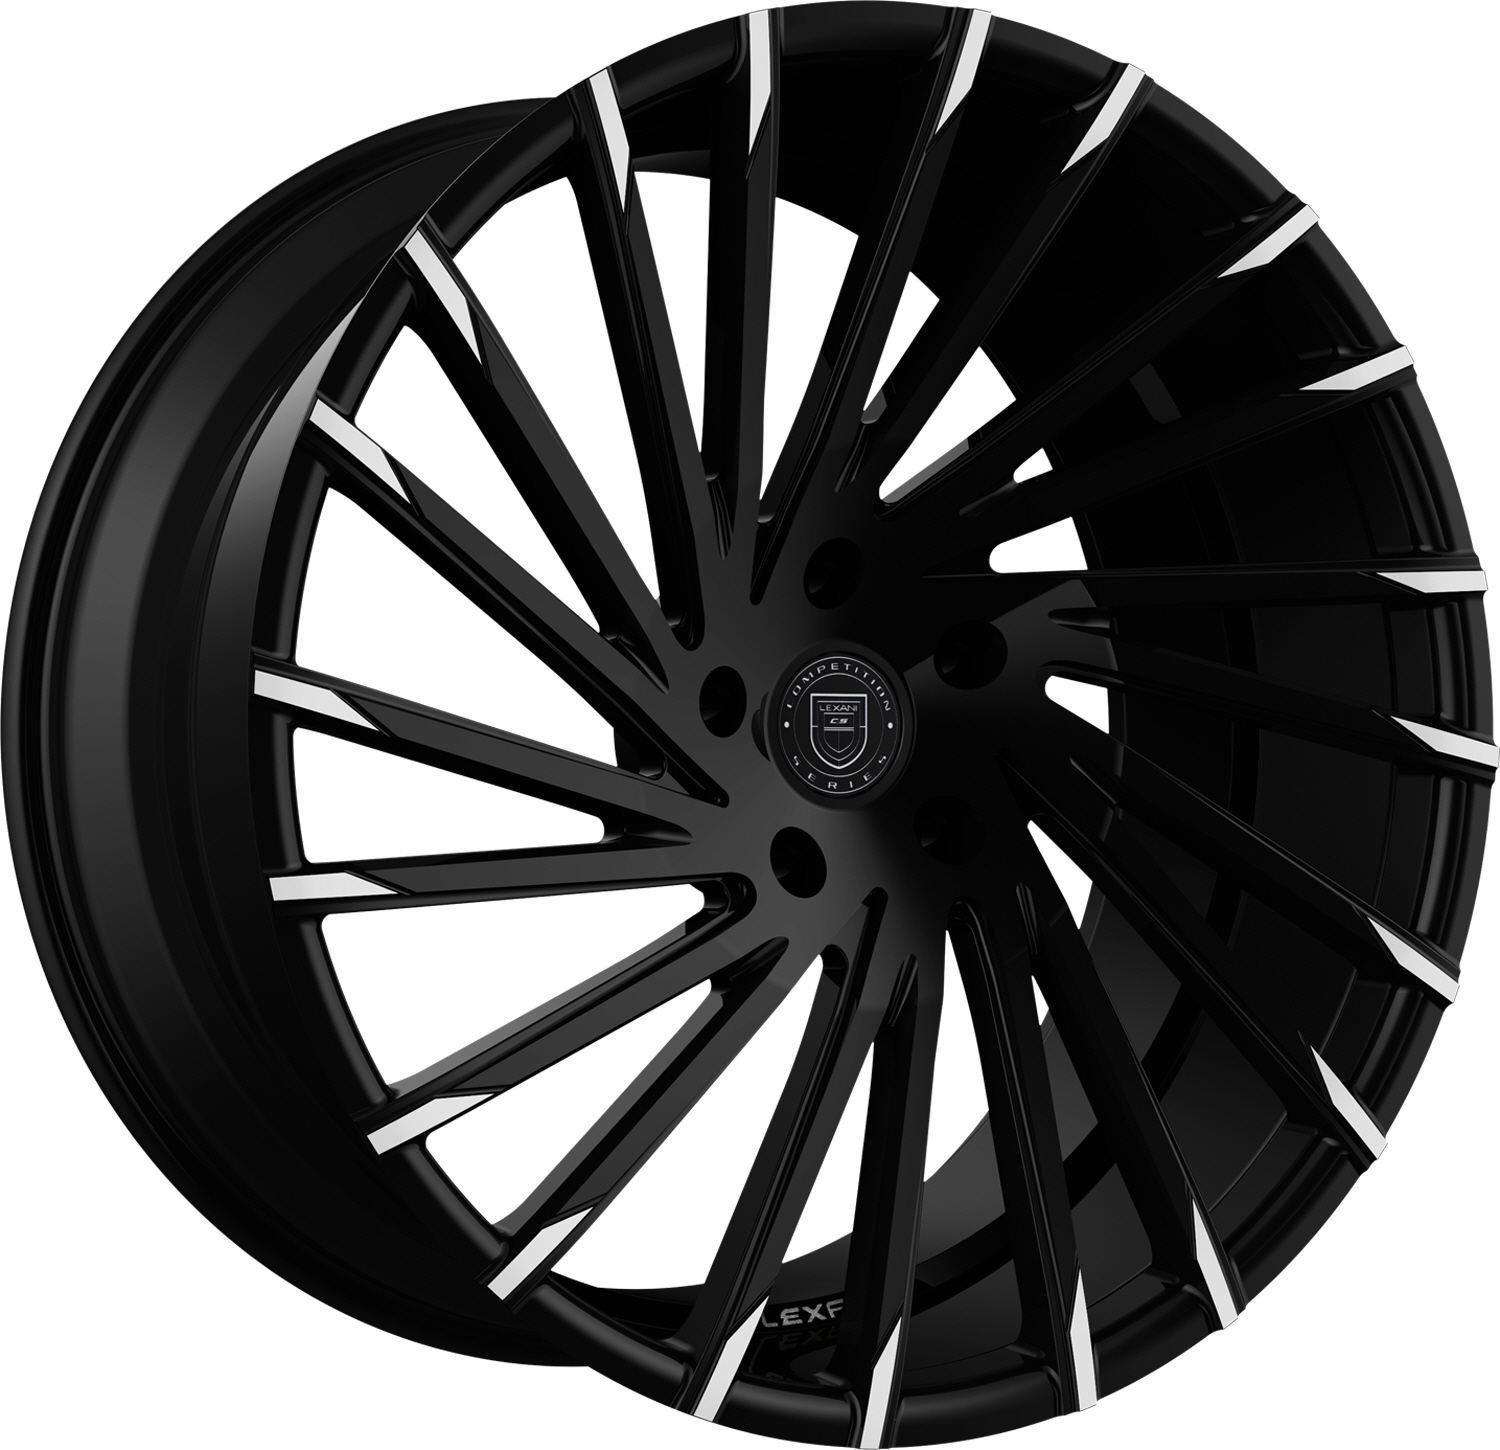 663 - WRAITH  WHEELS AND RIMS PACKAGES